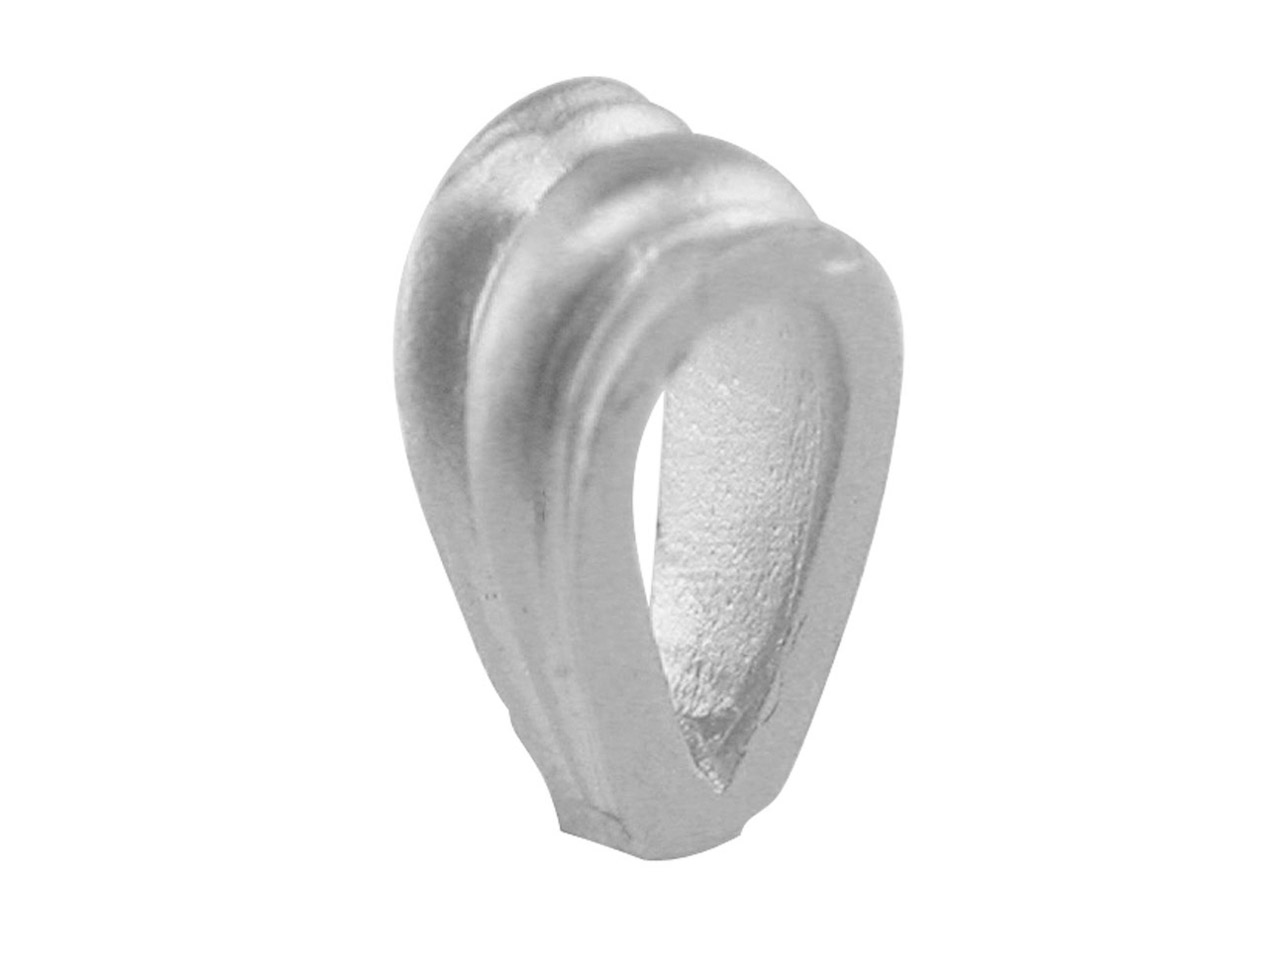 18ct White Gold Bail Grooved Heavy Medium Semi Finsemi Finished